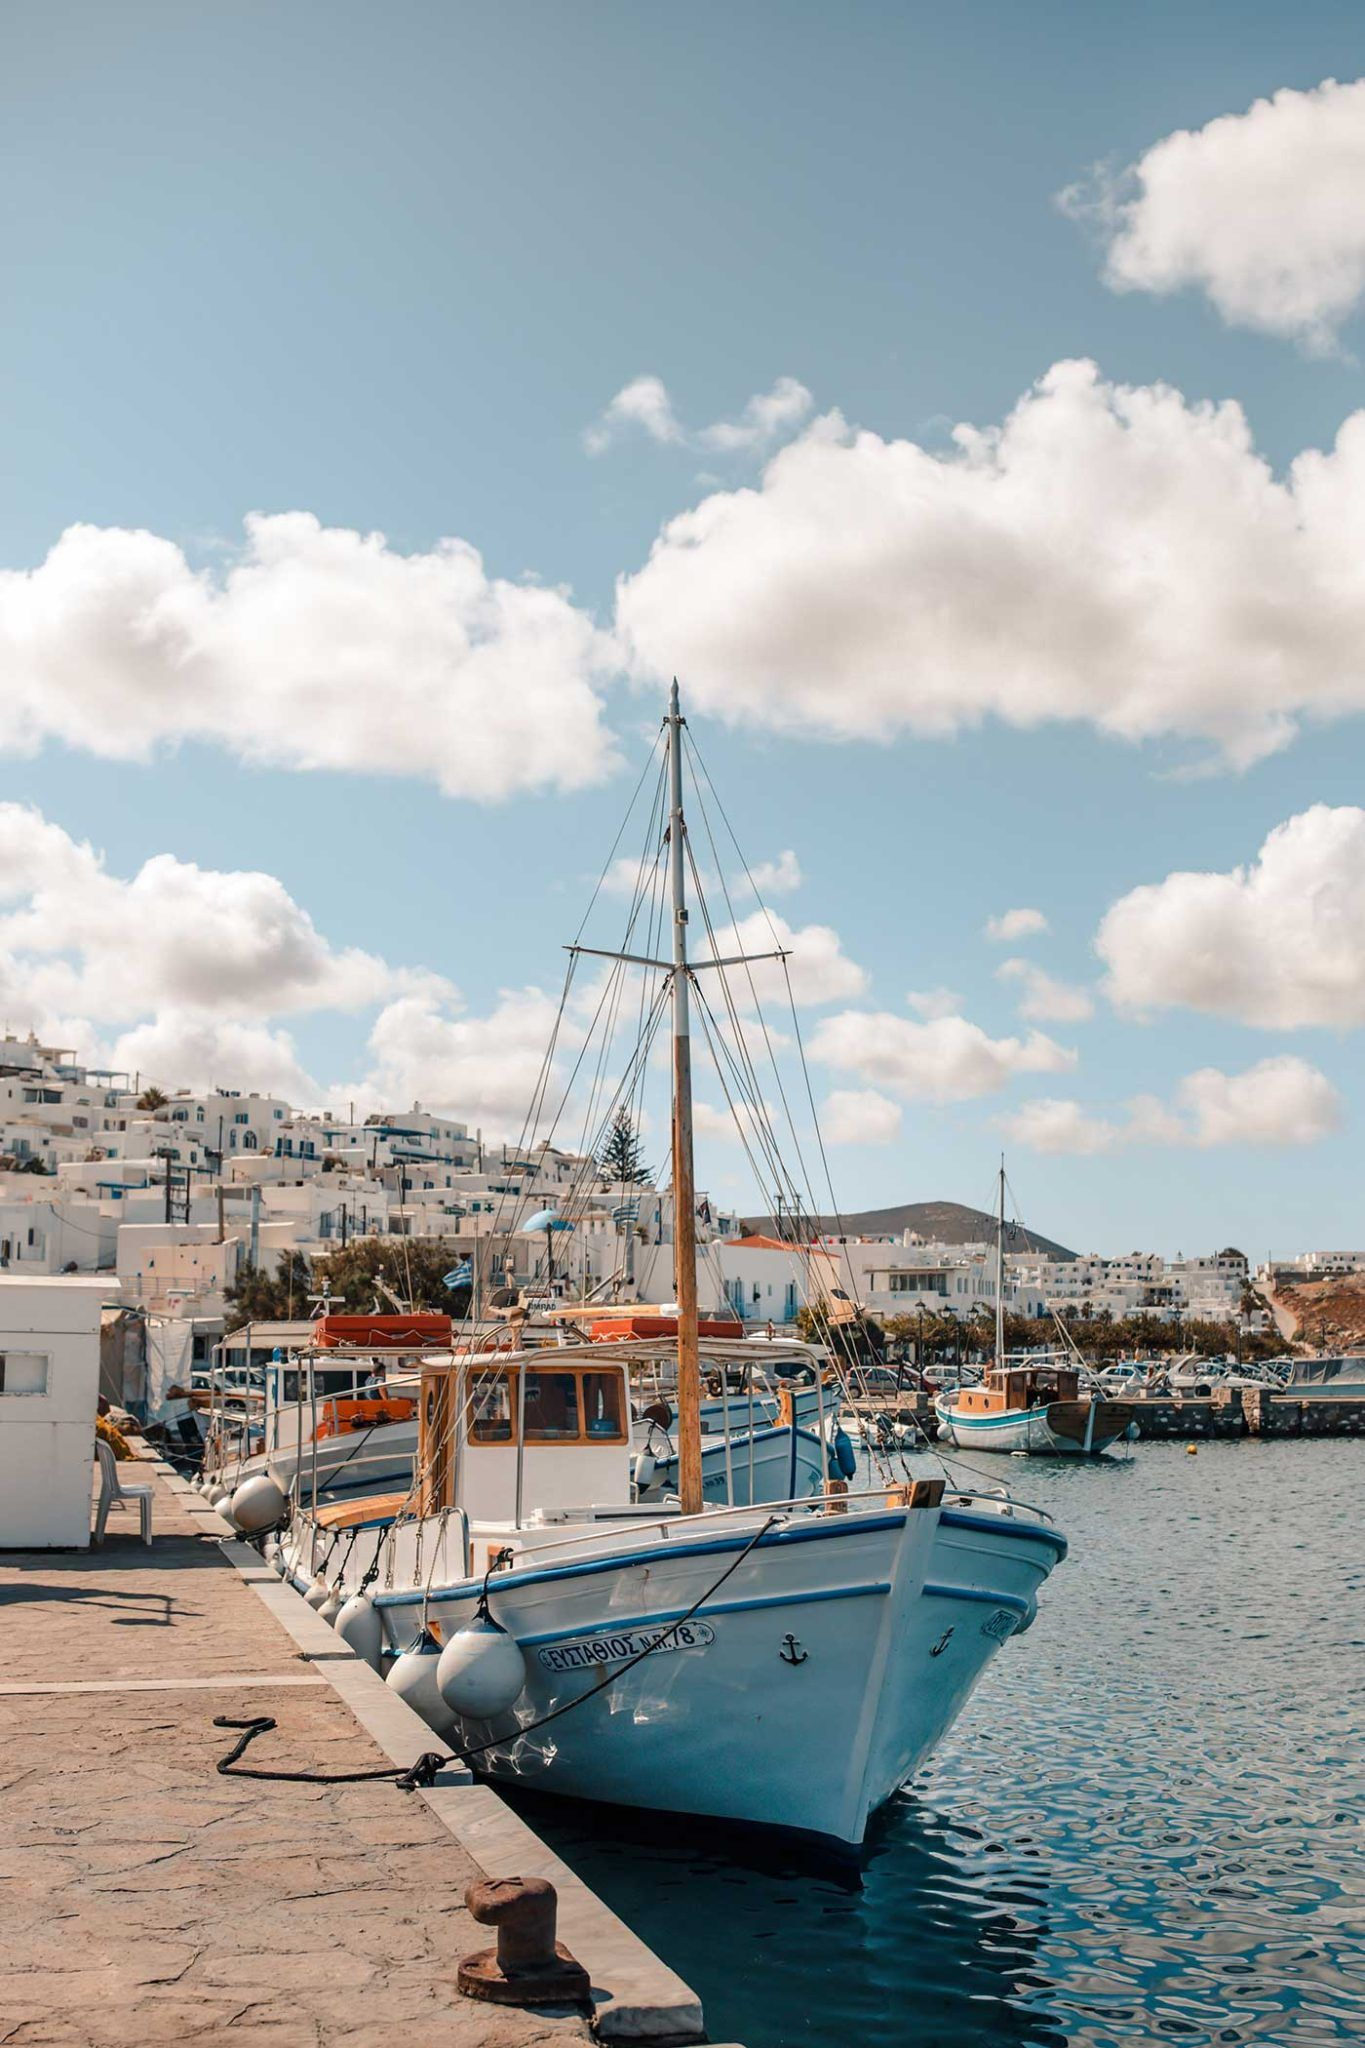 Paros Travel Guide: Why Paros Should be on Your Greek Itinerary